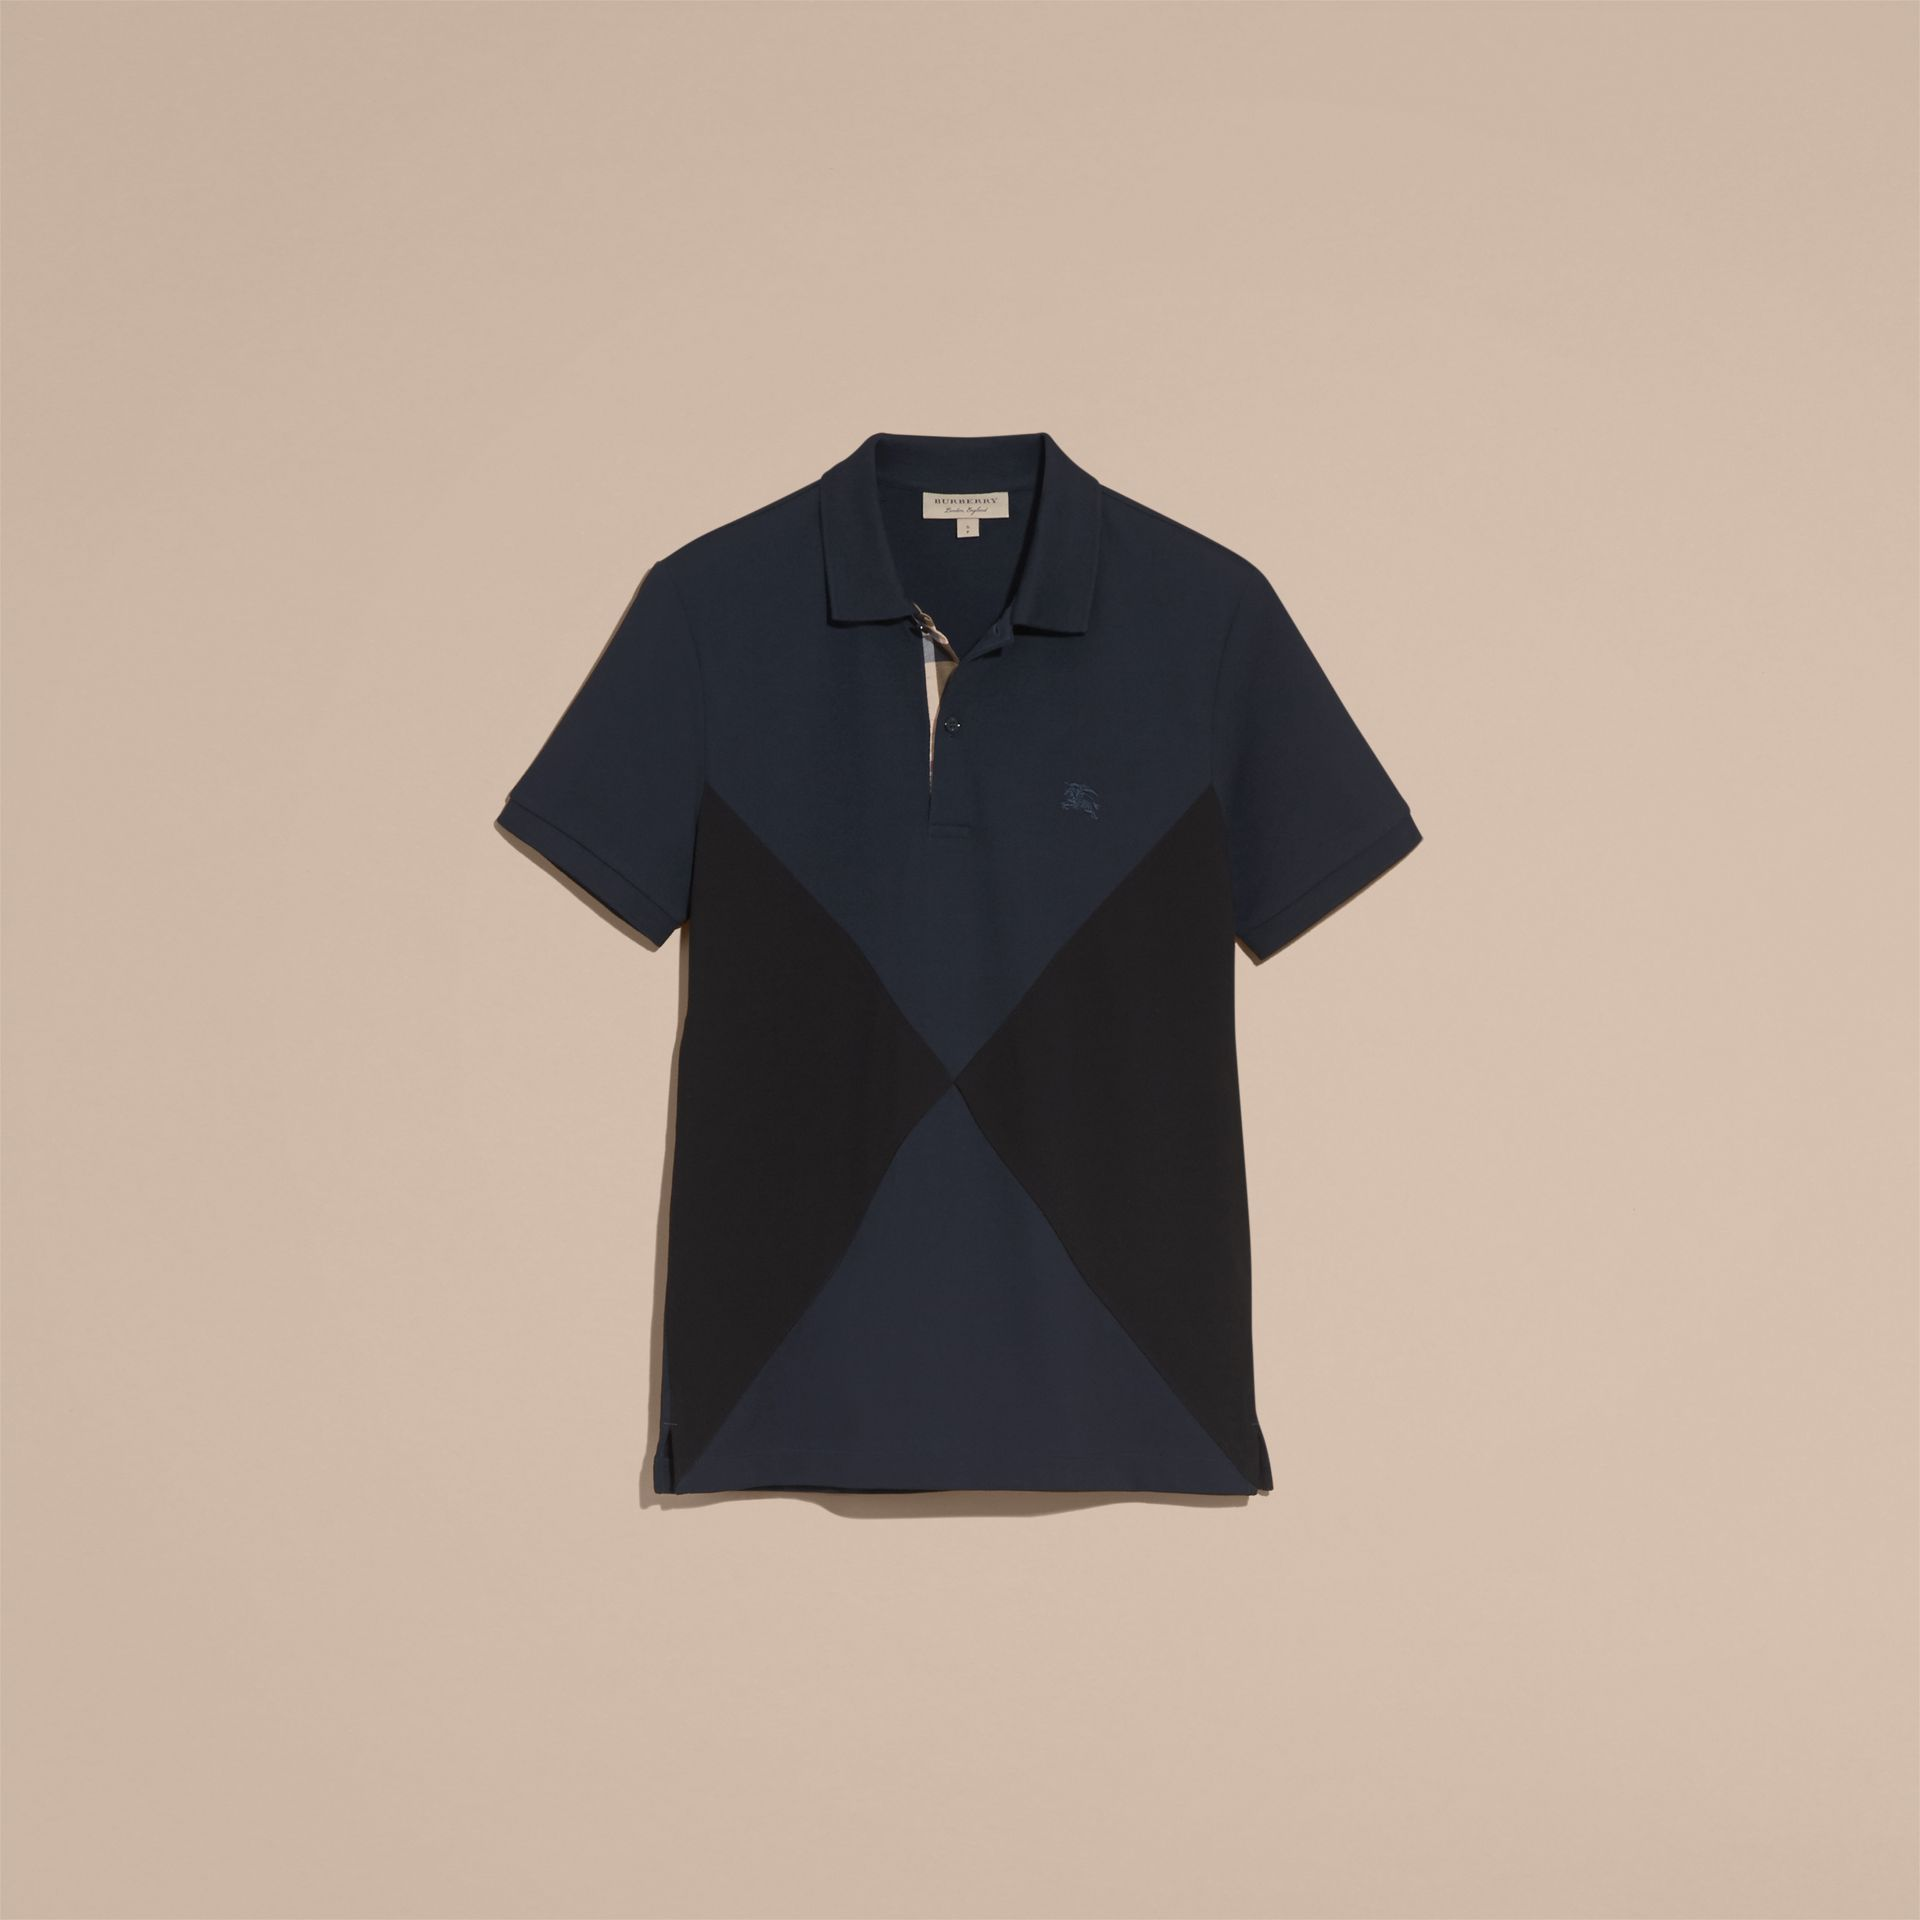 Geometric Motif Cotton Piqué Polo Shirt with Check Placket in Dark Navy - gallery image 4